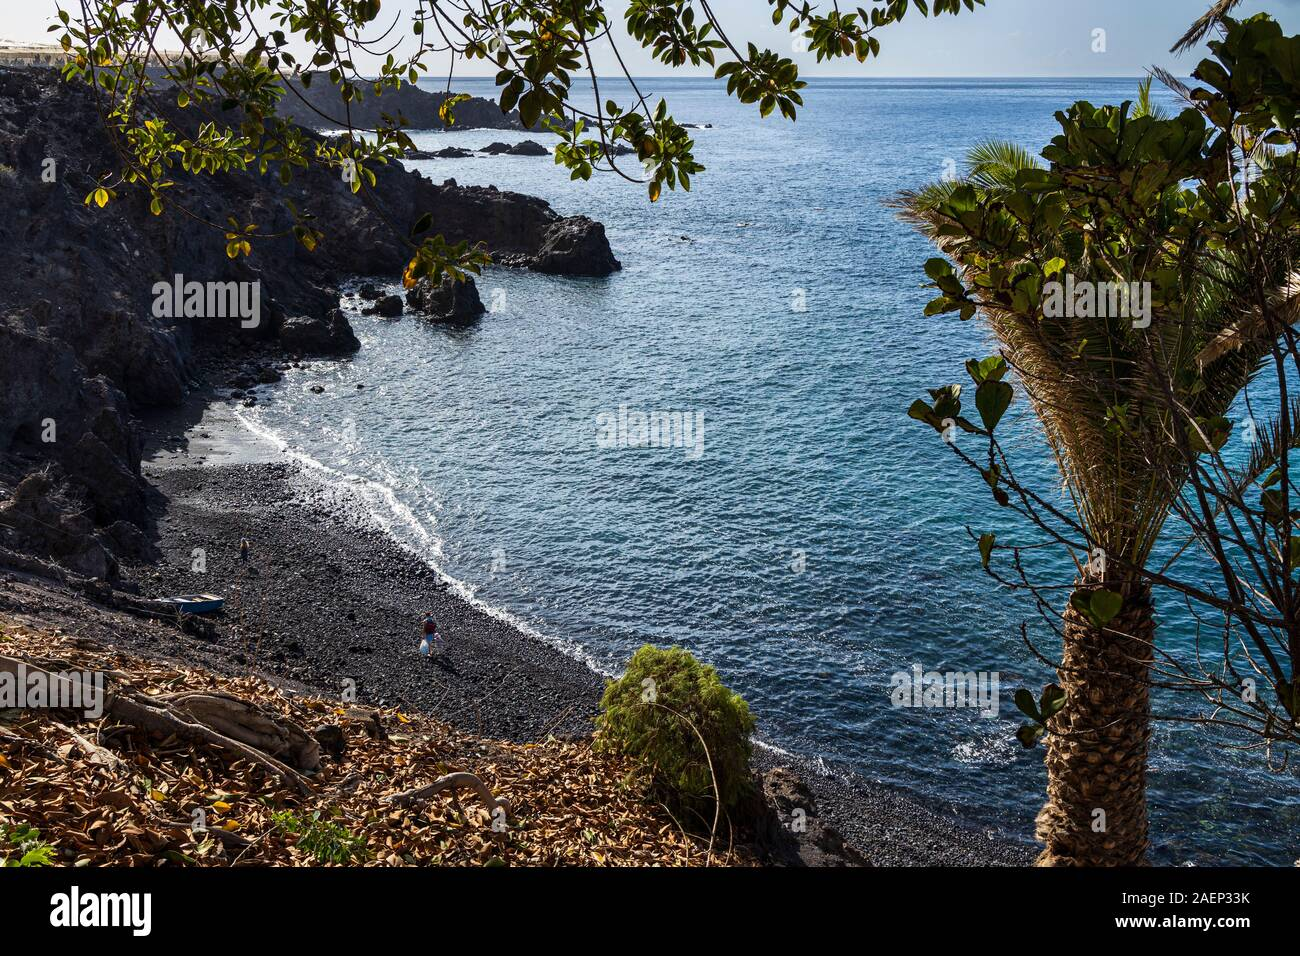 Small secluded stony beach in Alcala on the west coast of Tenerife, Canary Islands, Spain Stock Photo